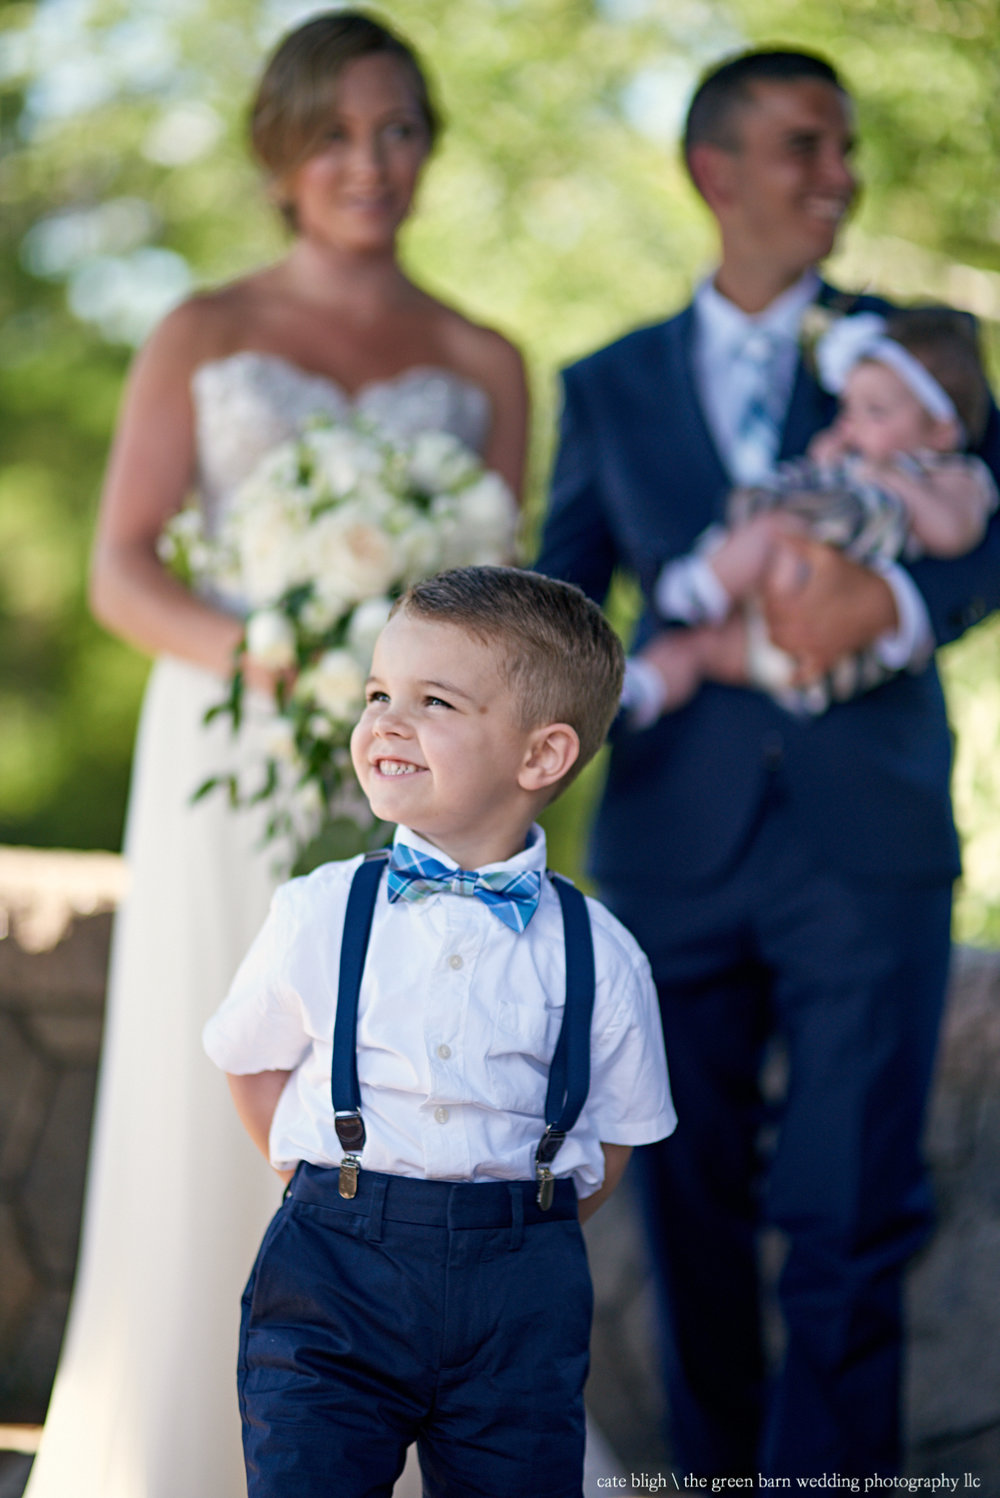 Ring bearer with bride and groom in background NH wedding